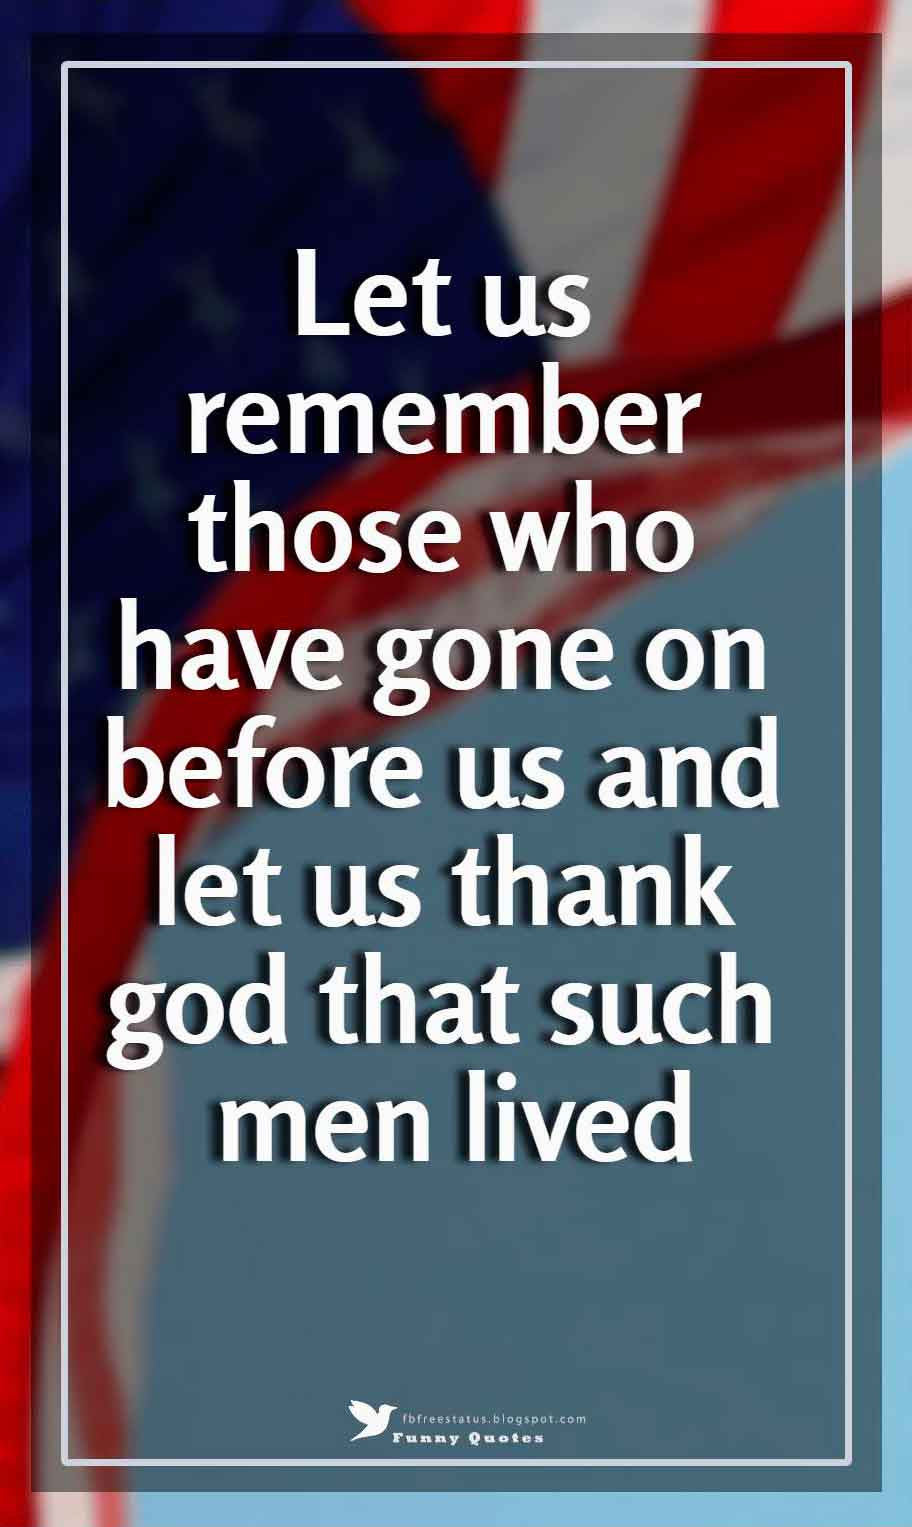 Let us remember those who have gone on before us and let us thank god that such men lived